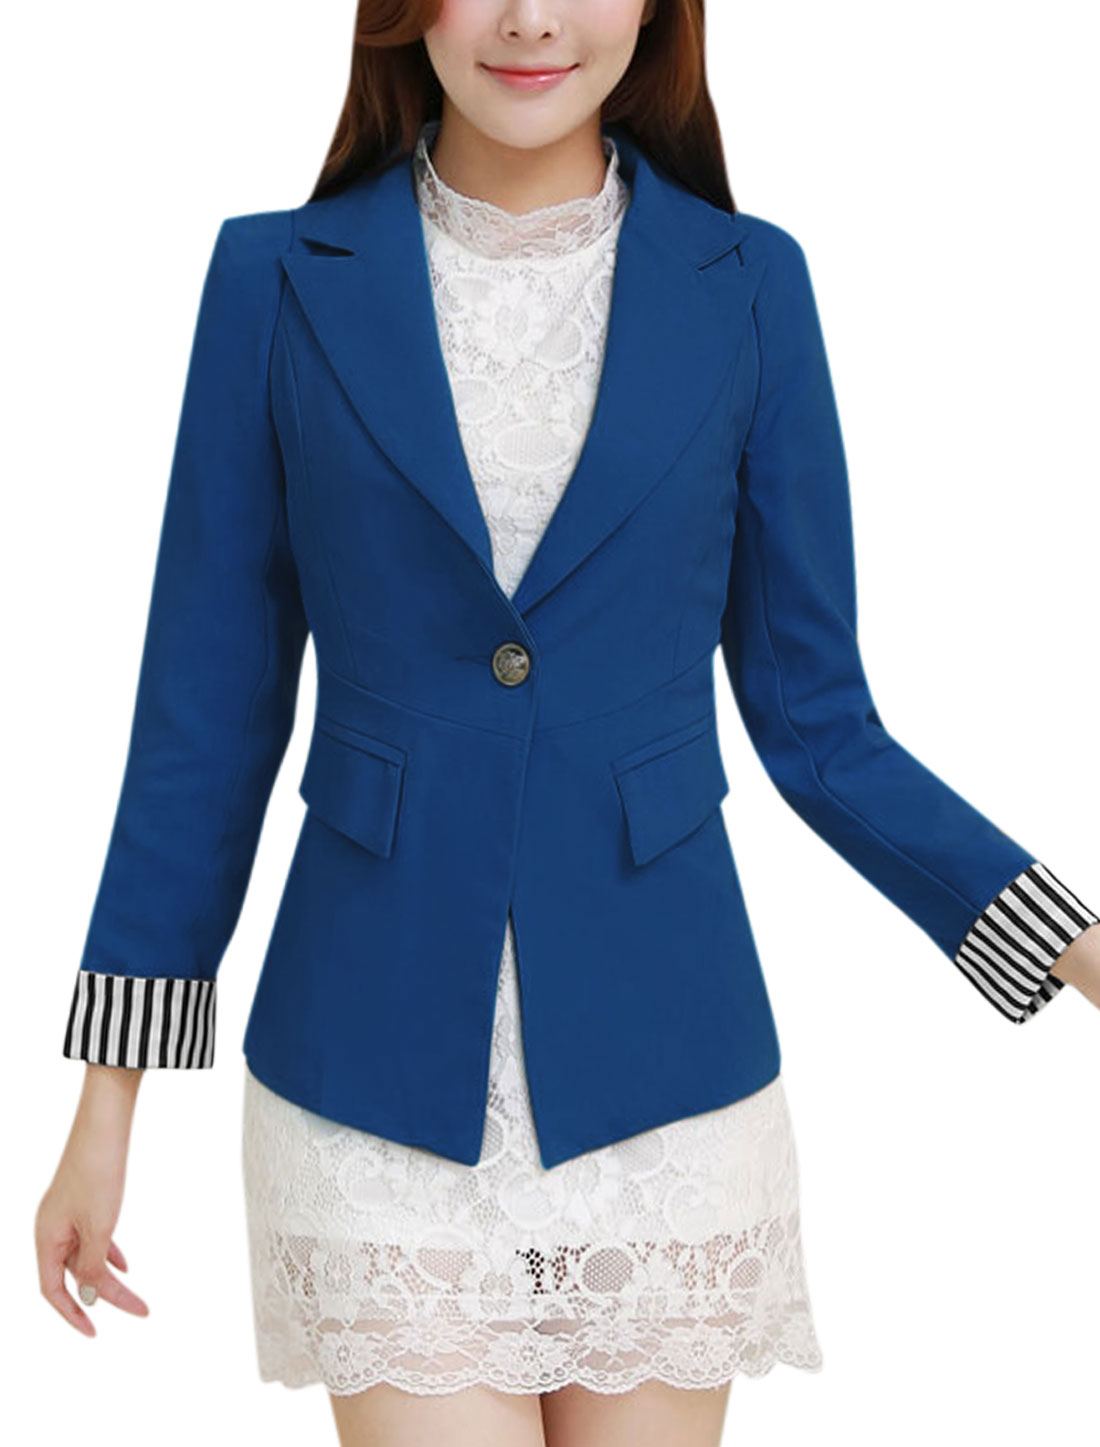 Button Closed Roll-up Cuffs Slim Fit Blue Blazer Jacket for Women L